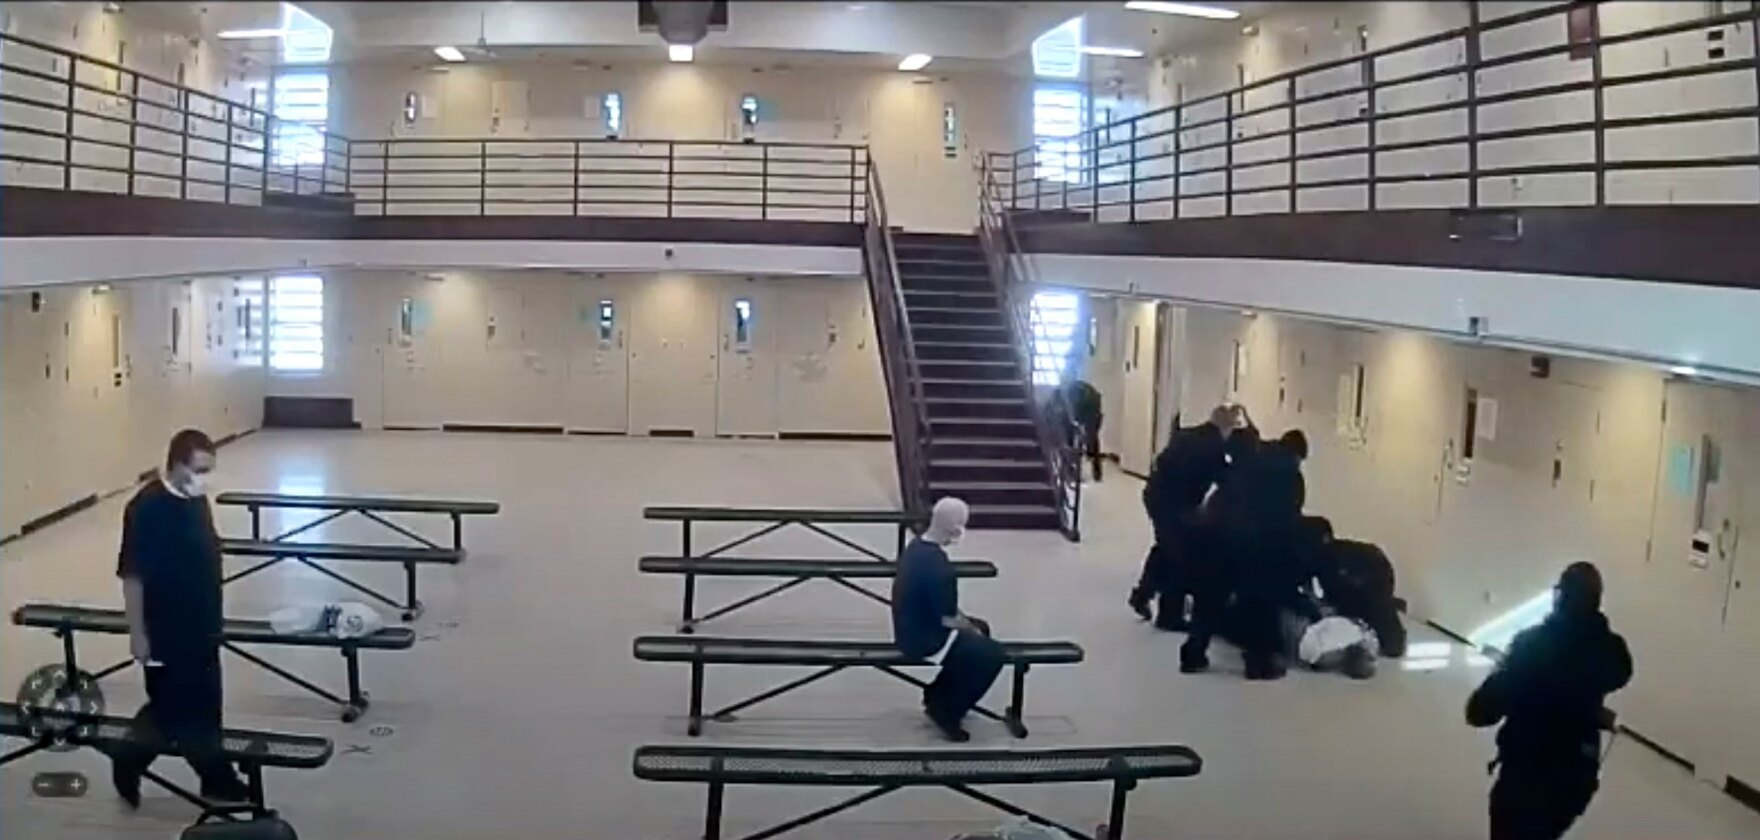 Death At Orient Prison Prompts Statewide Changes To Security Cameras (image)